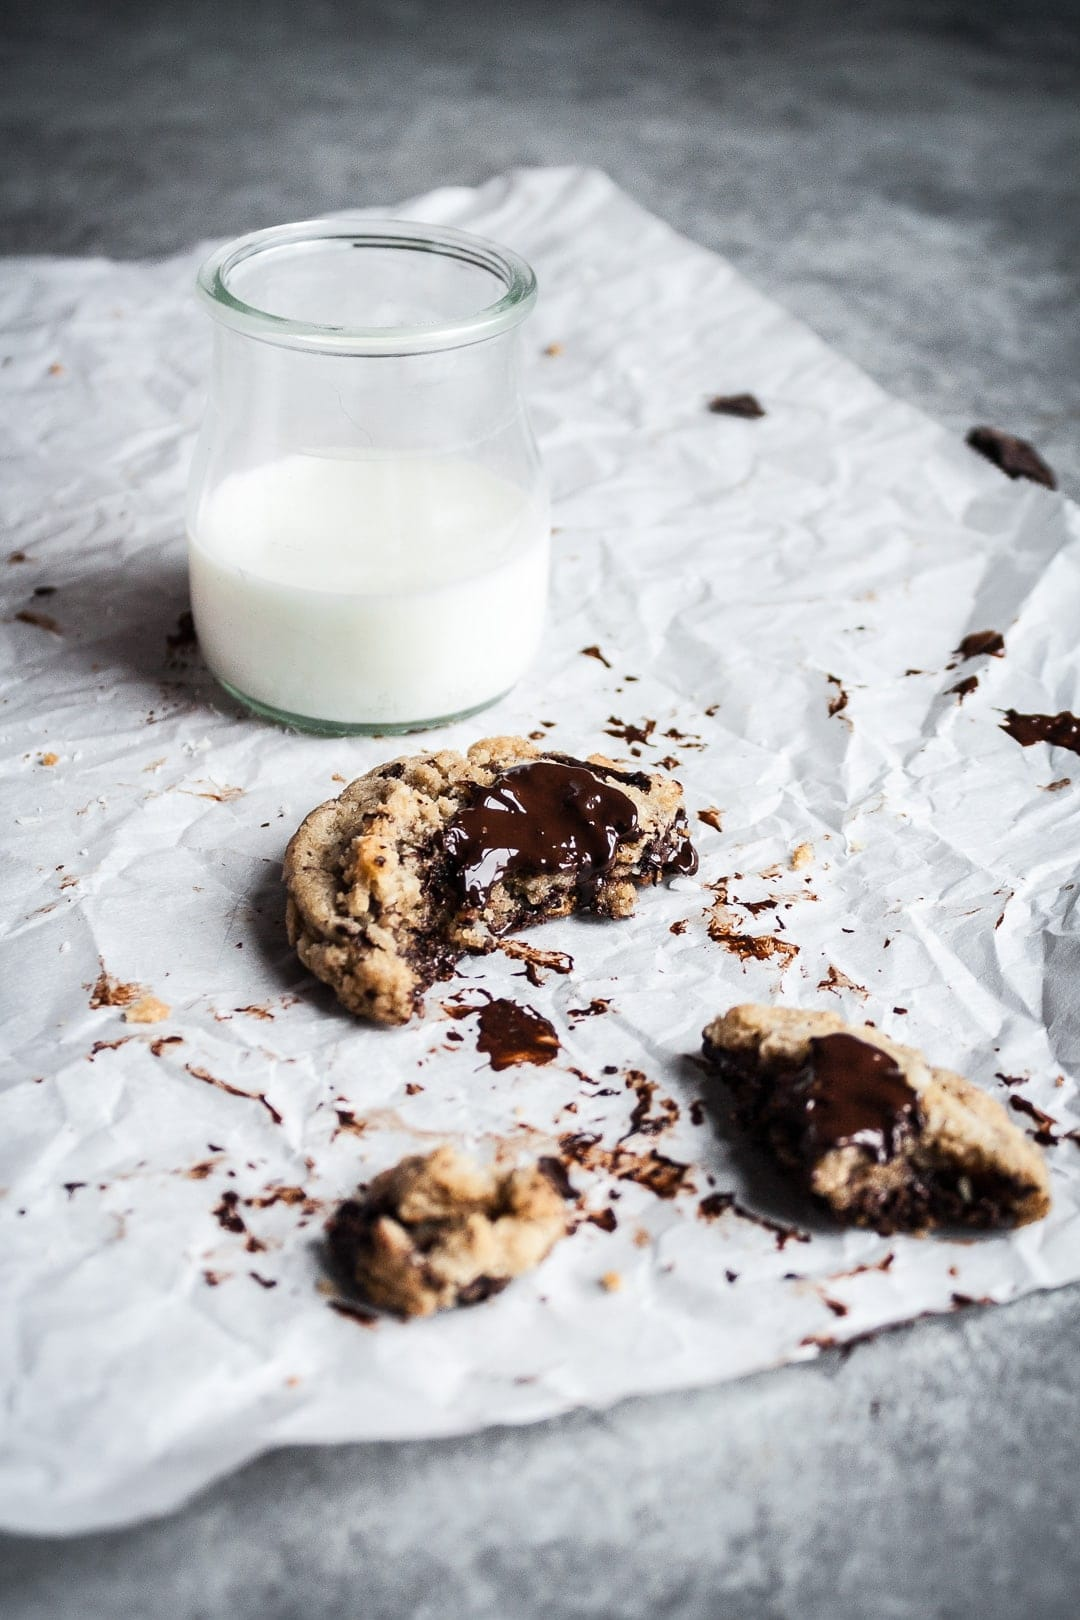 A partially eaten coconut chocolate chip cookie on parchment paper with a glass of milk nearby